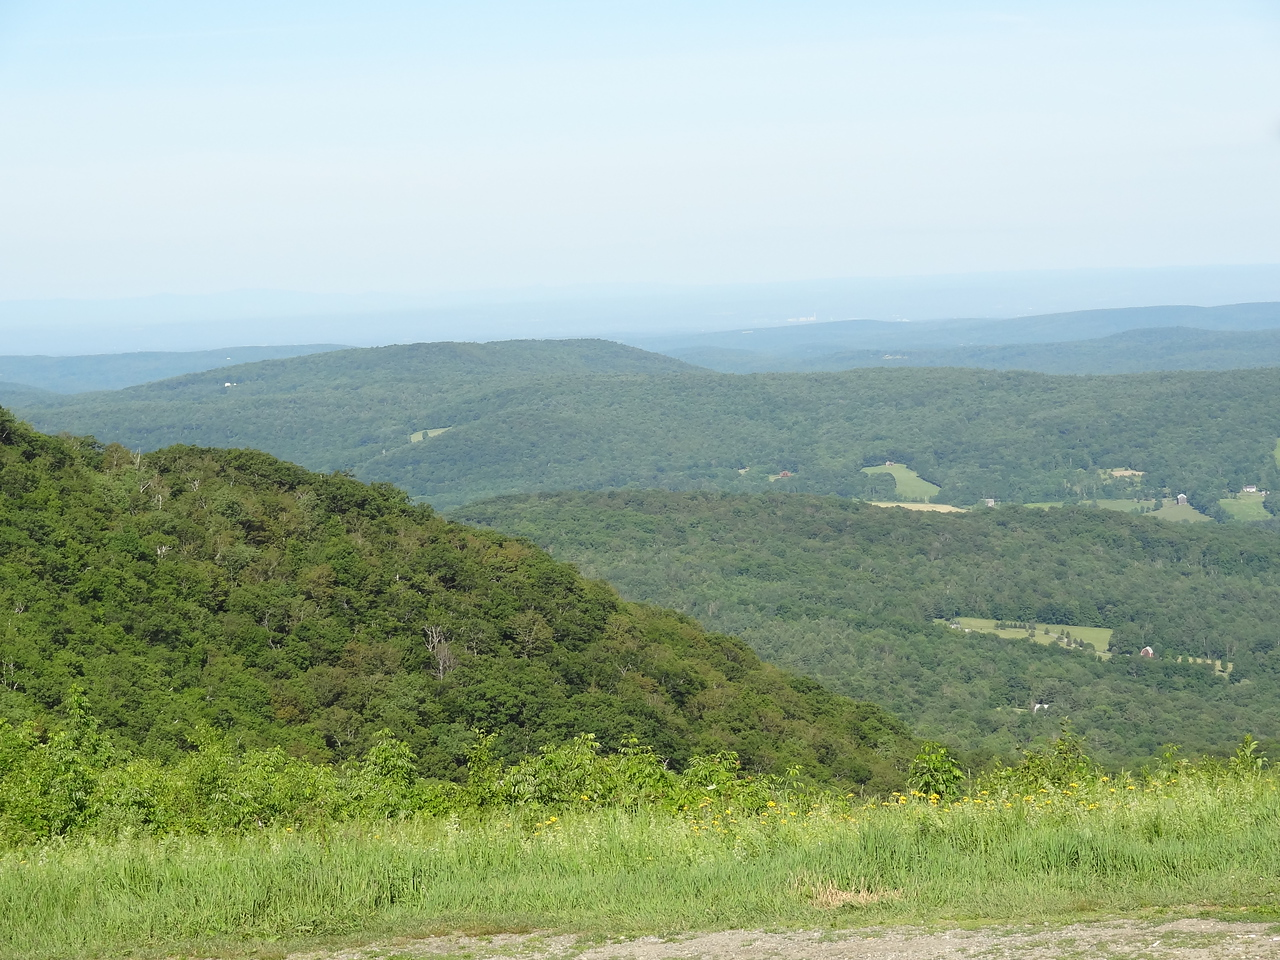 A view from Berry Pond area, in MA looking into NY.